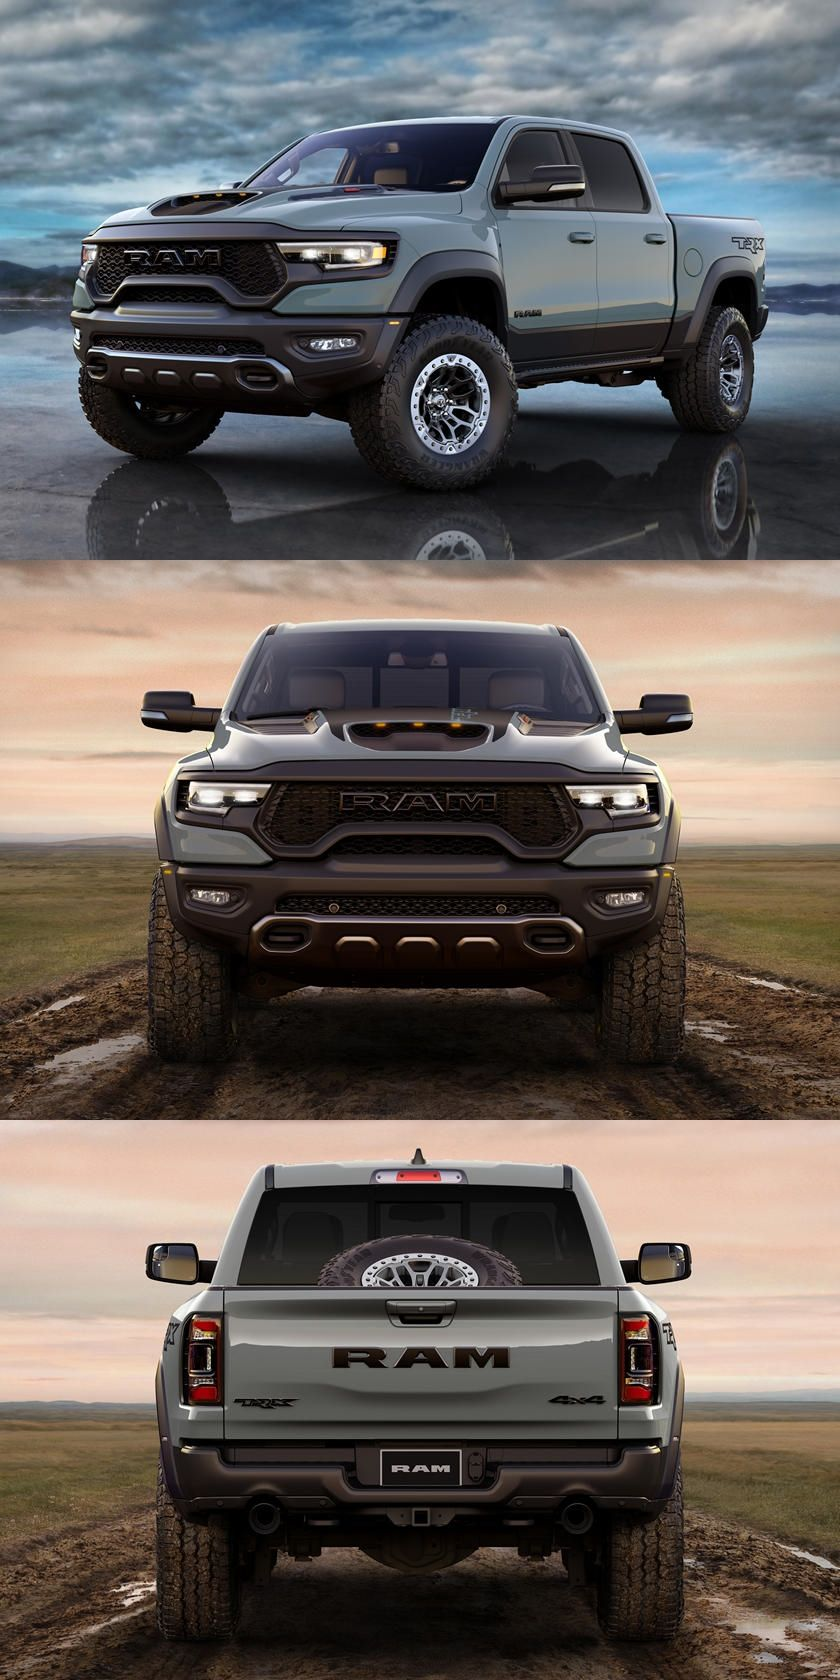 2021 Ram 1500 TRX Launch Edition Sells Out In 3 Hours